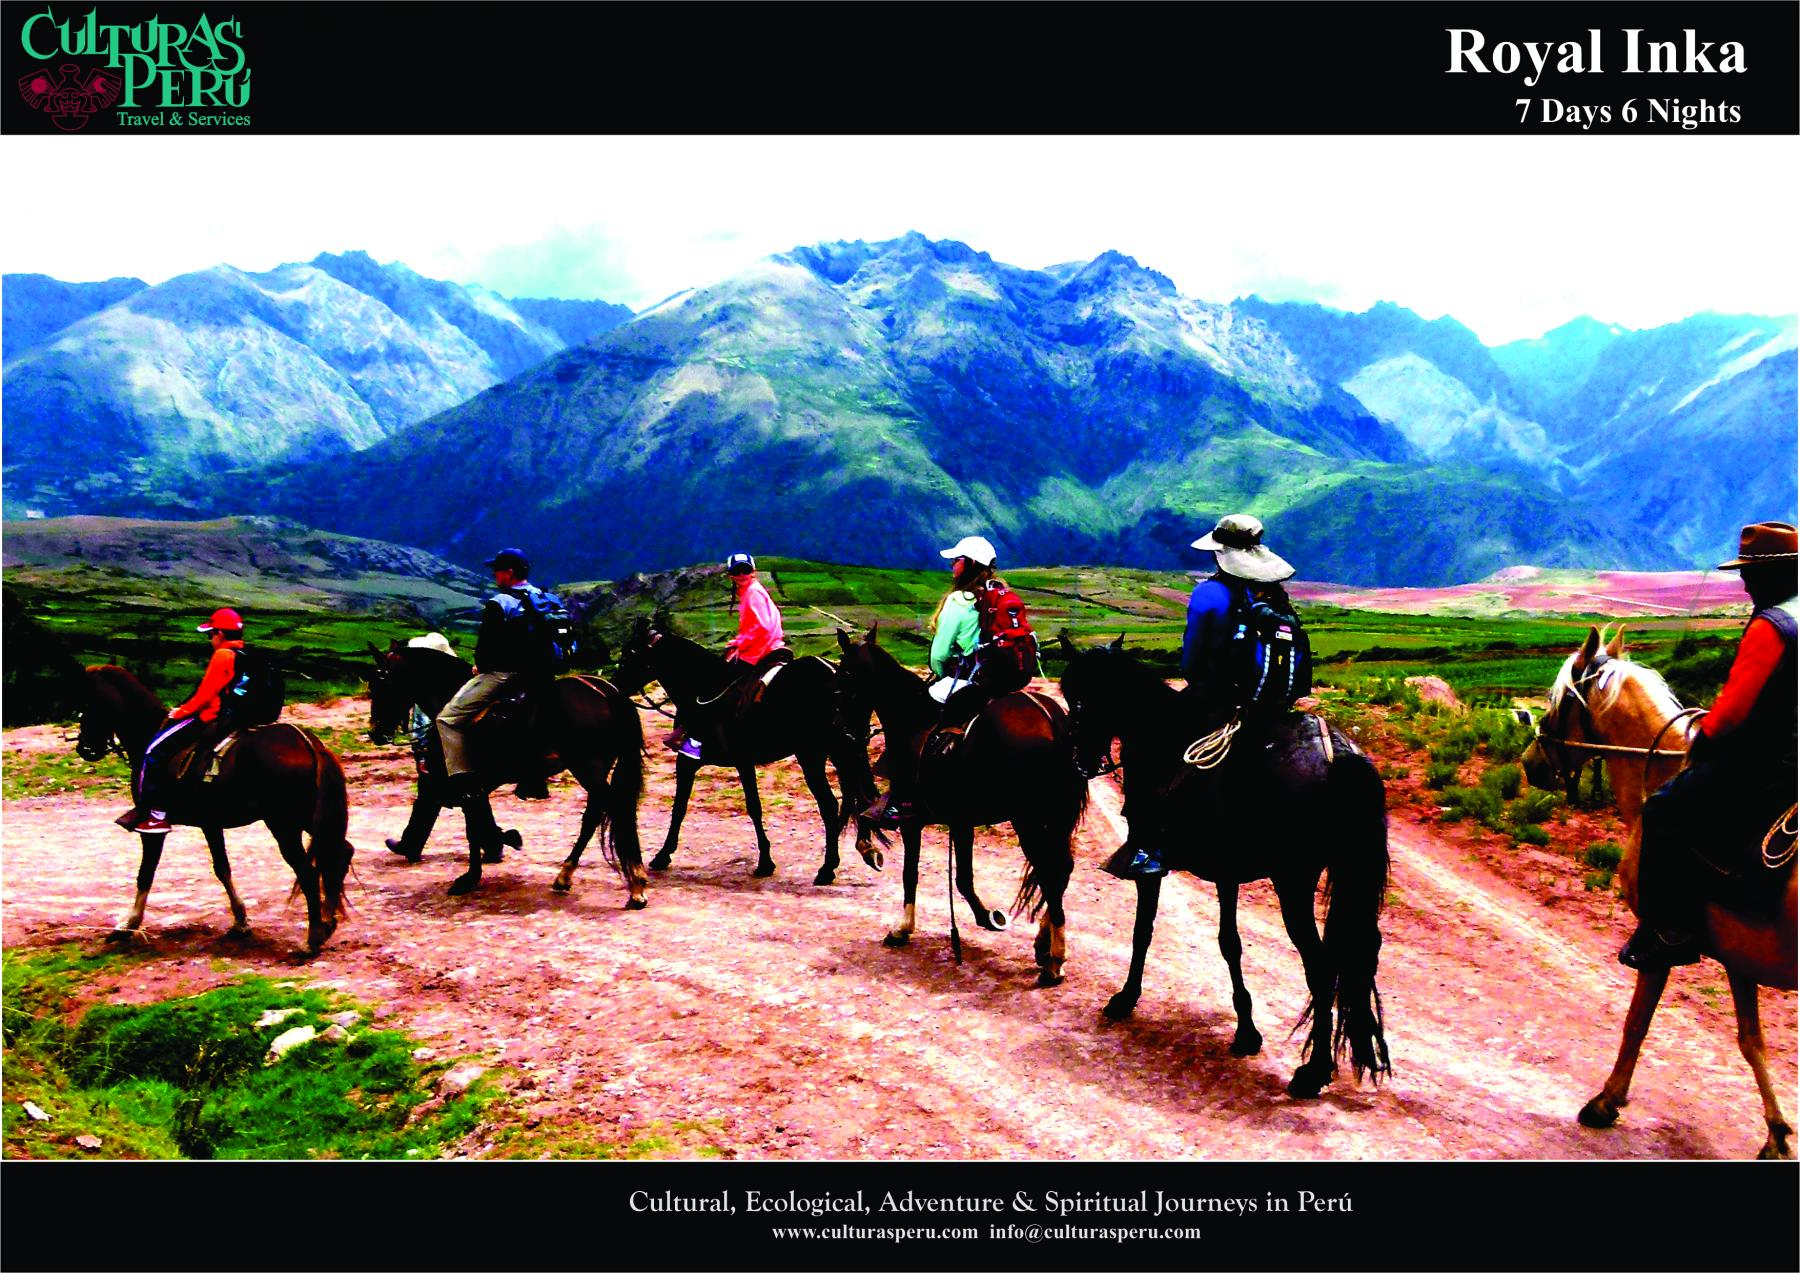 Day 4: Sacred Valley of The Incas (Inca terraces of Moray & Maras salt pans, riding Peruvian Paso horses)